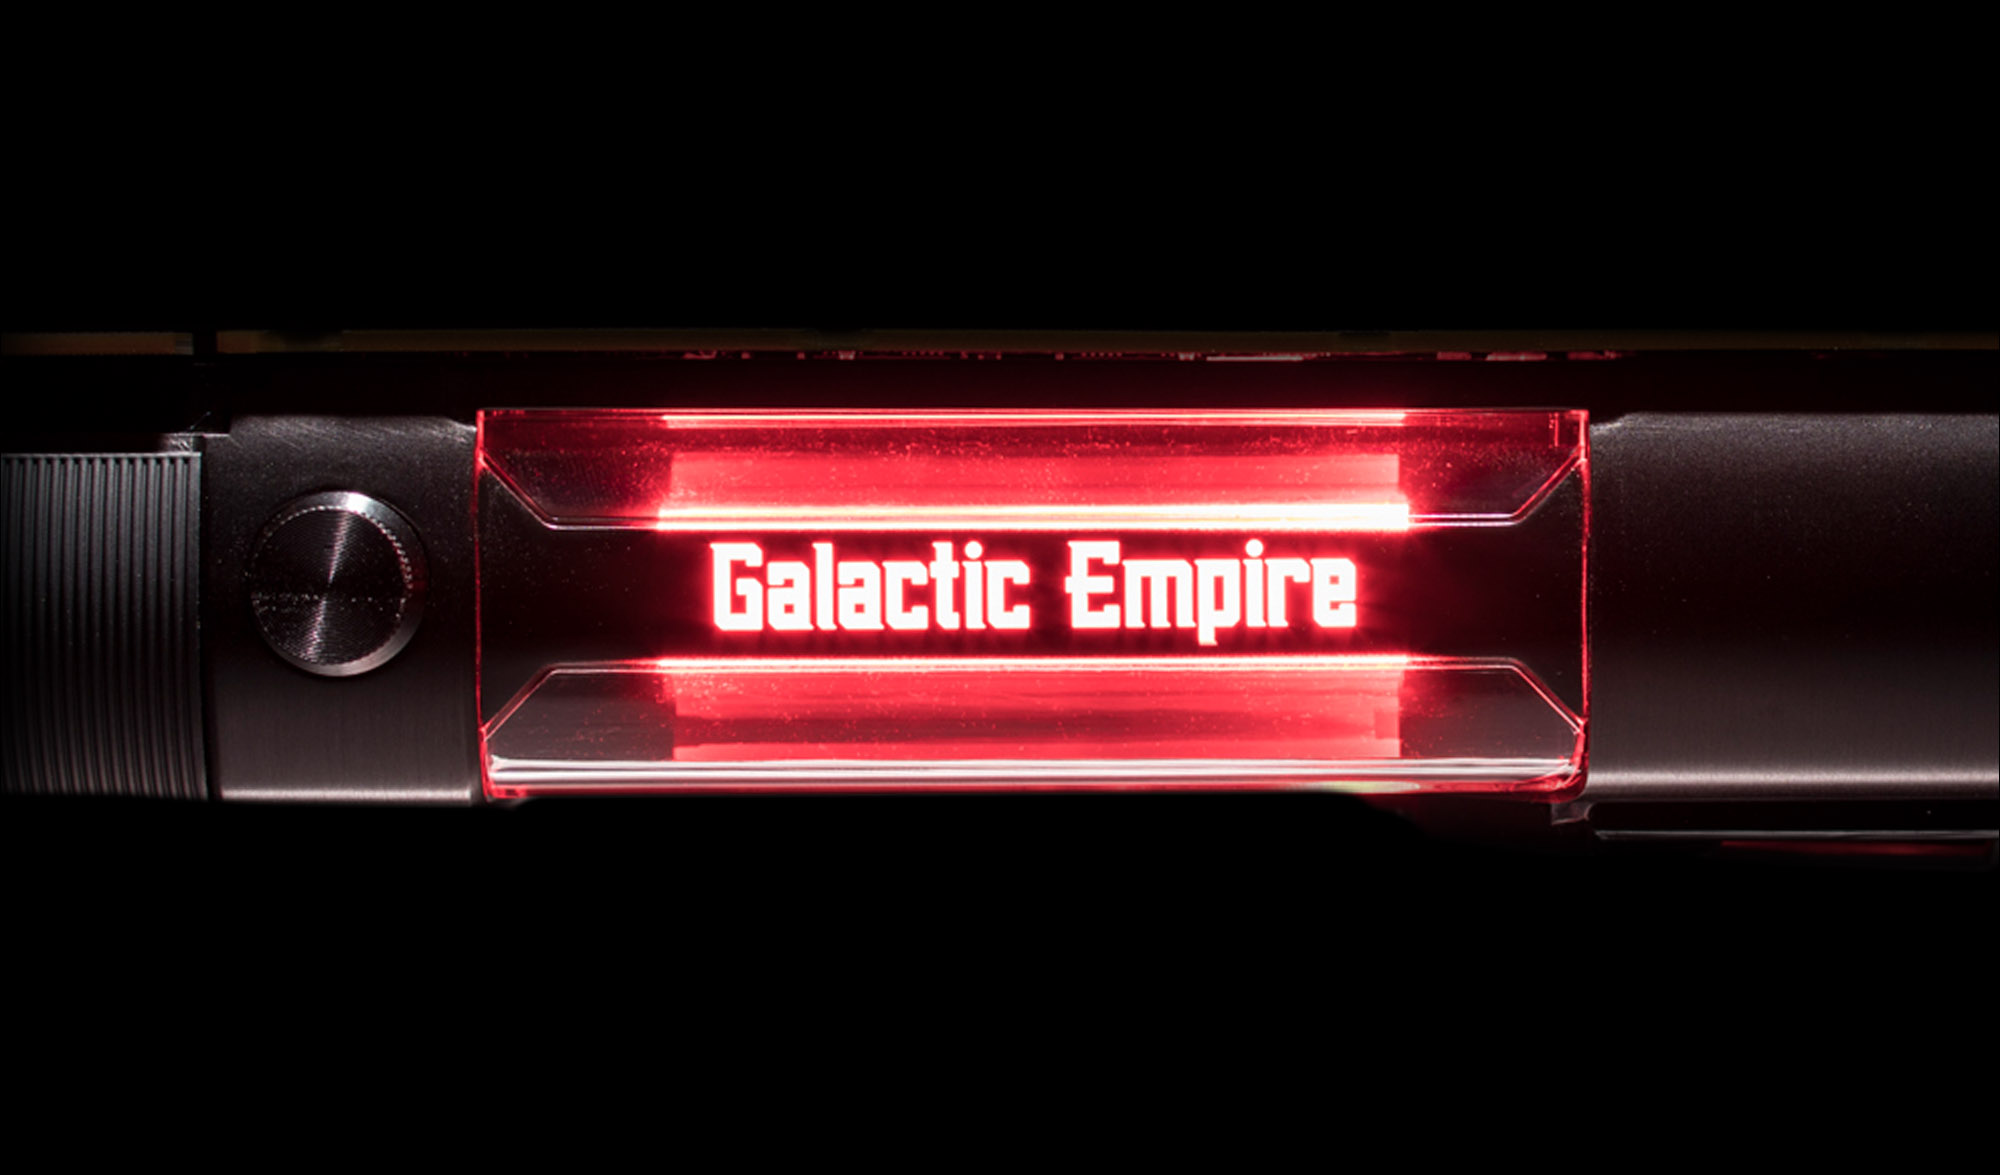 nvidia-titan-xp-ce-star-wars-galactic-empire-gallery-03.jpg